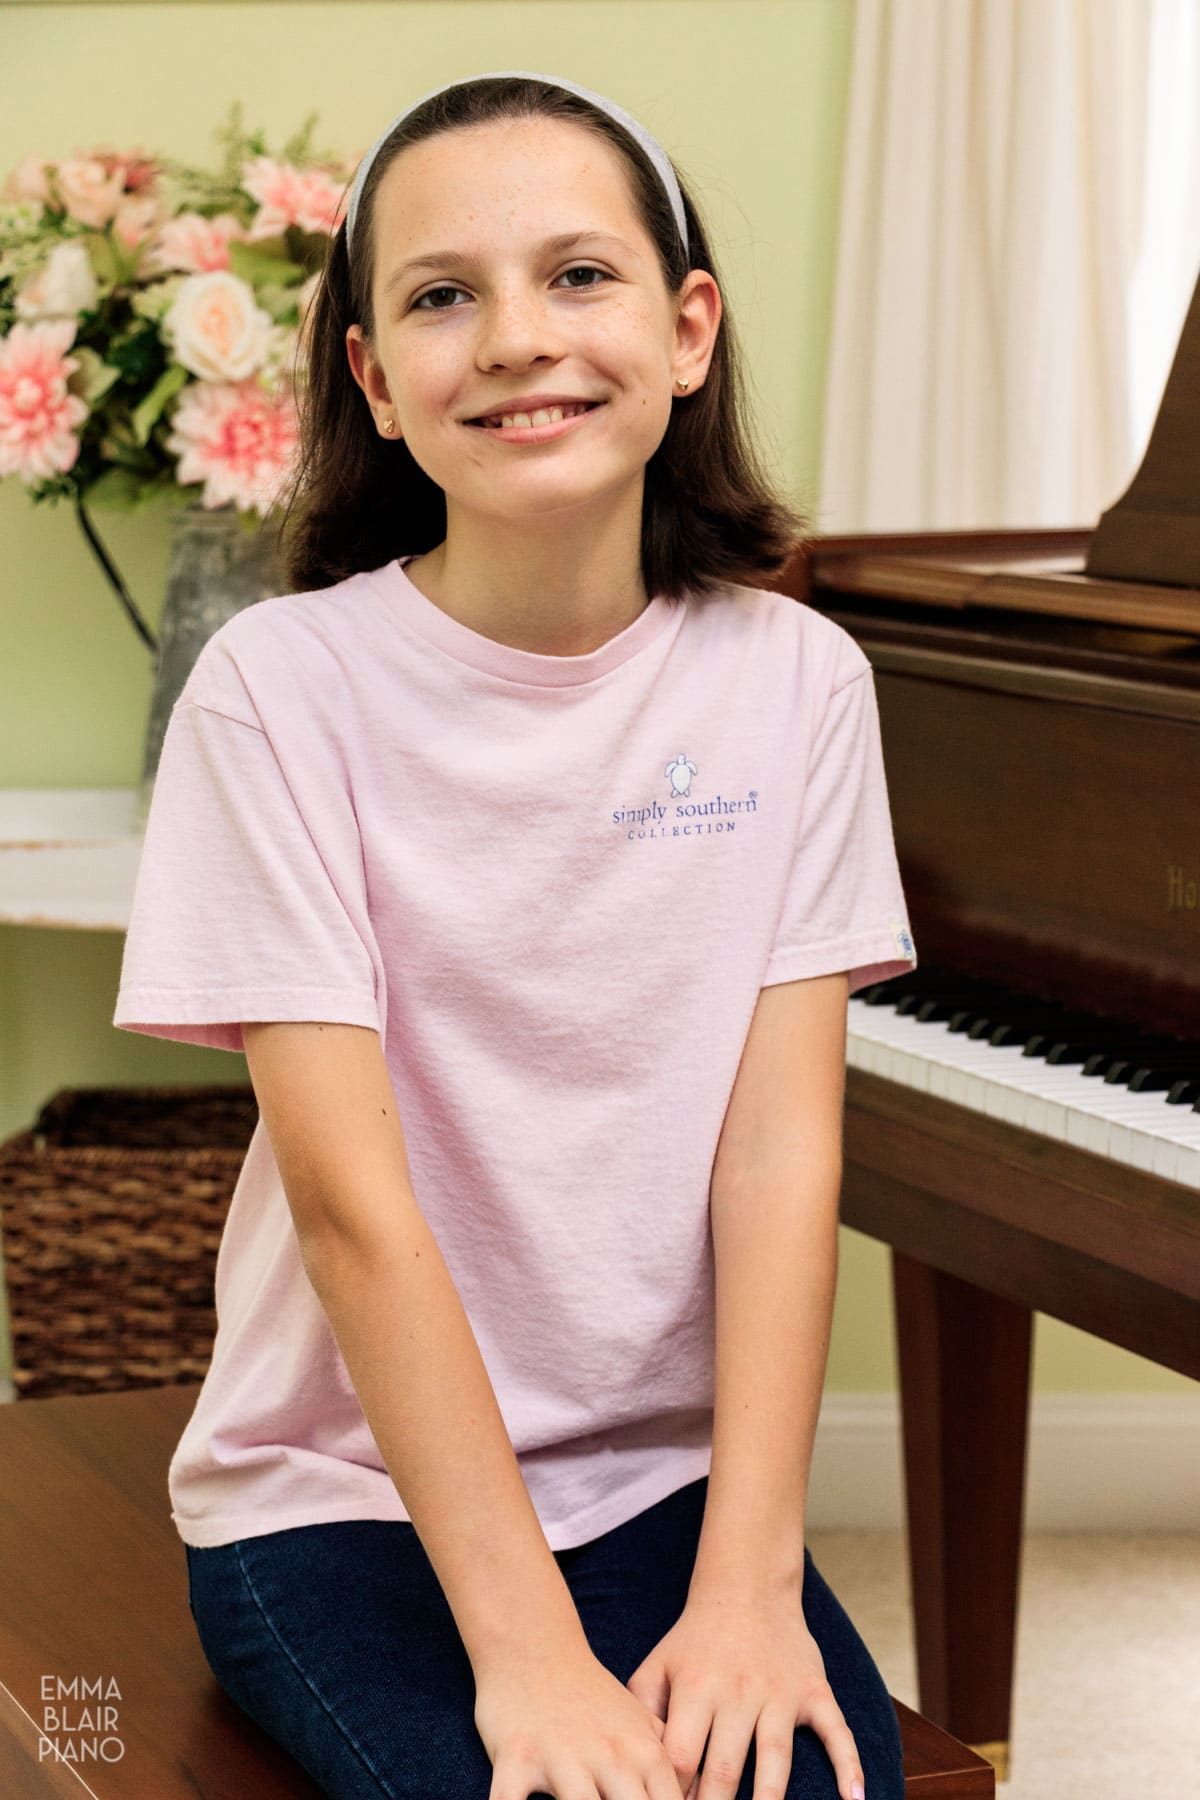 young girl smiling and sitting on the piano bench